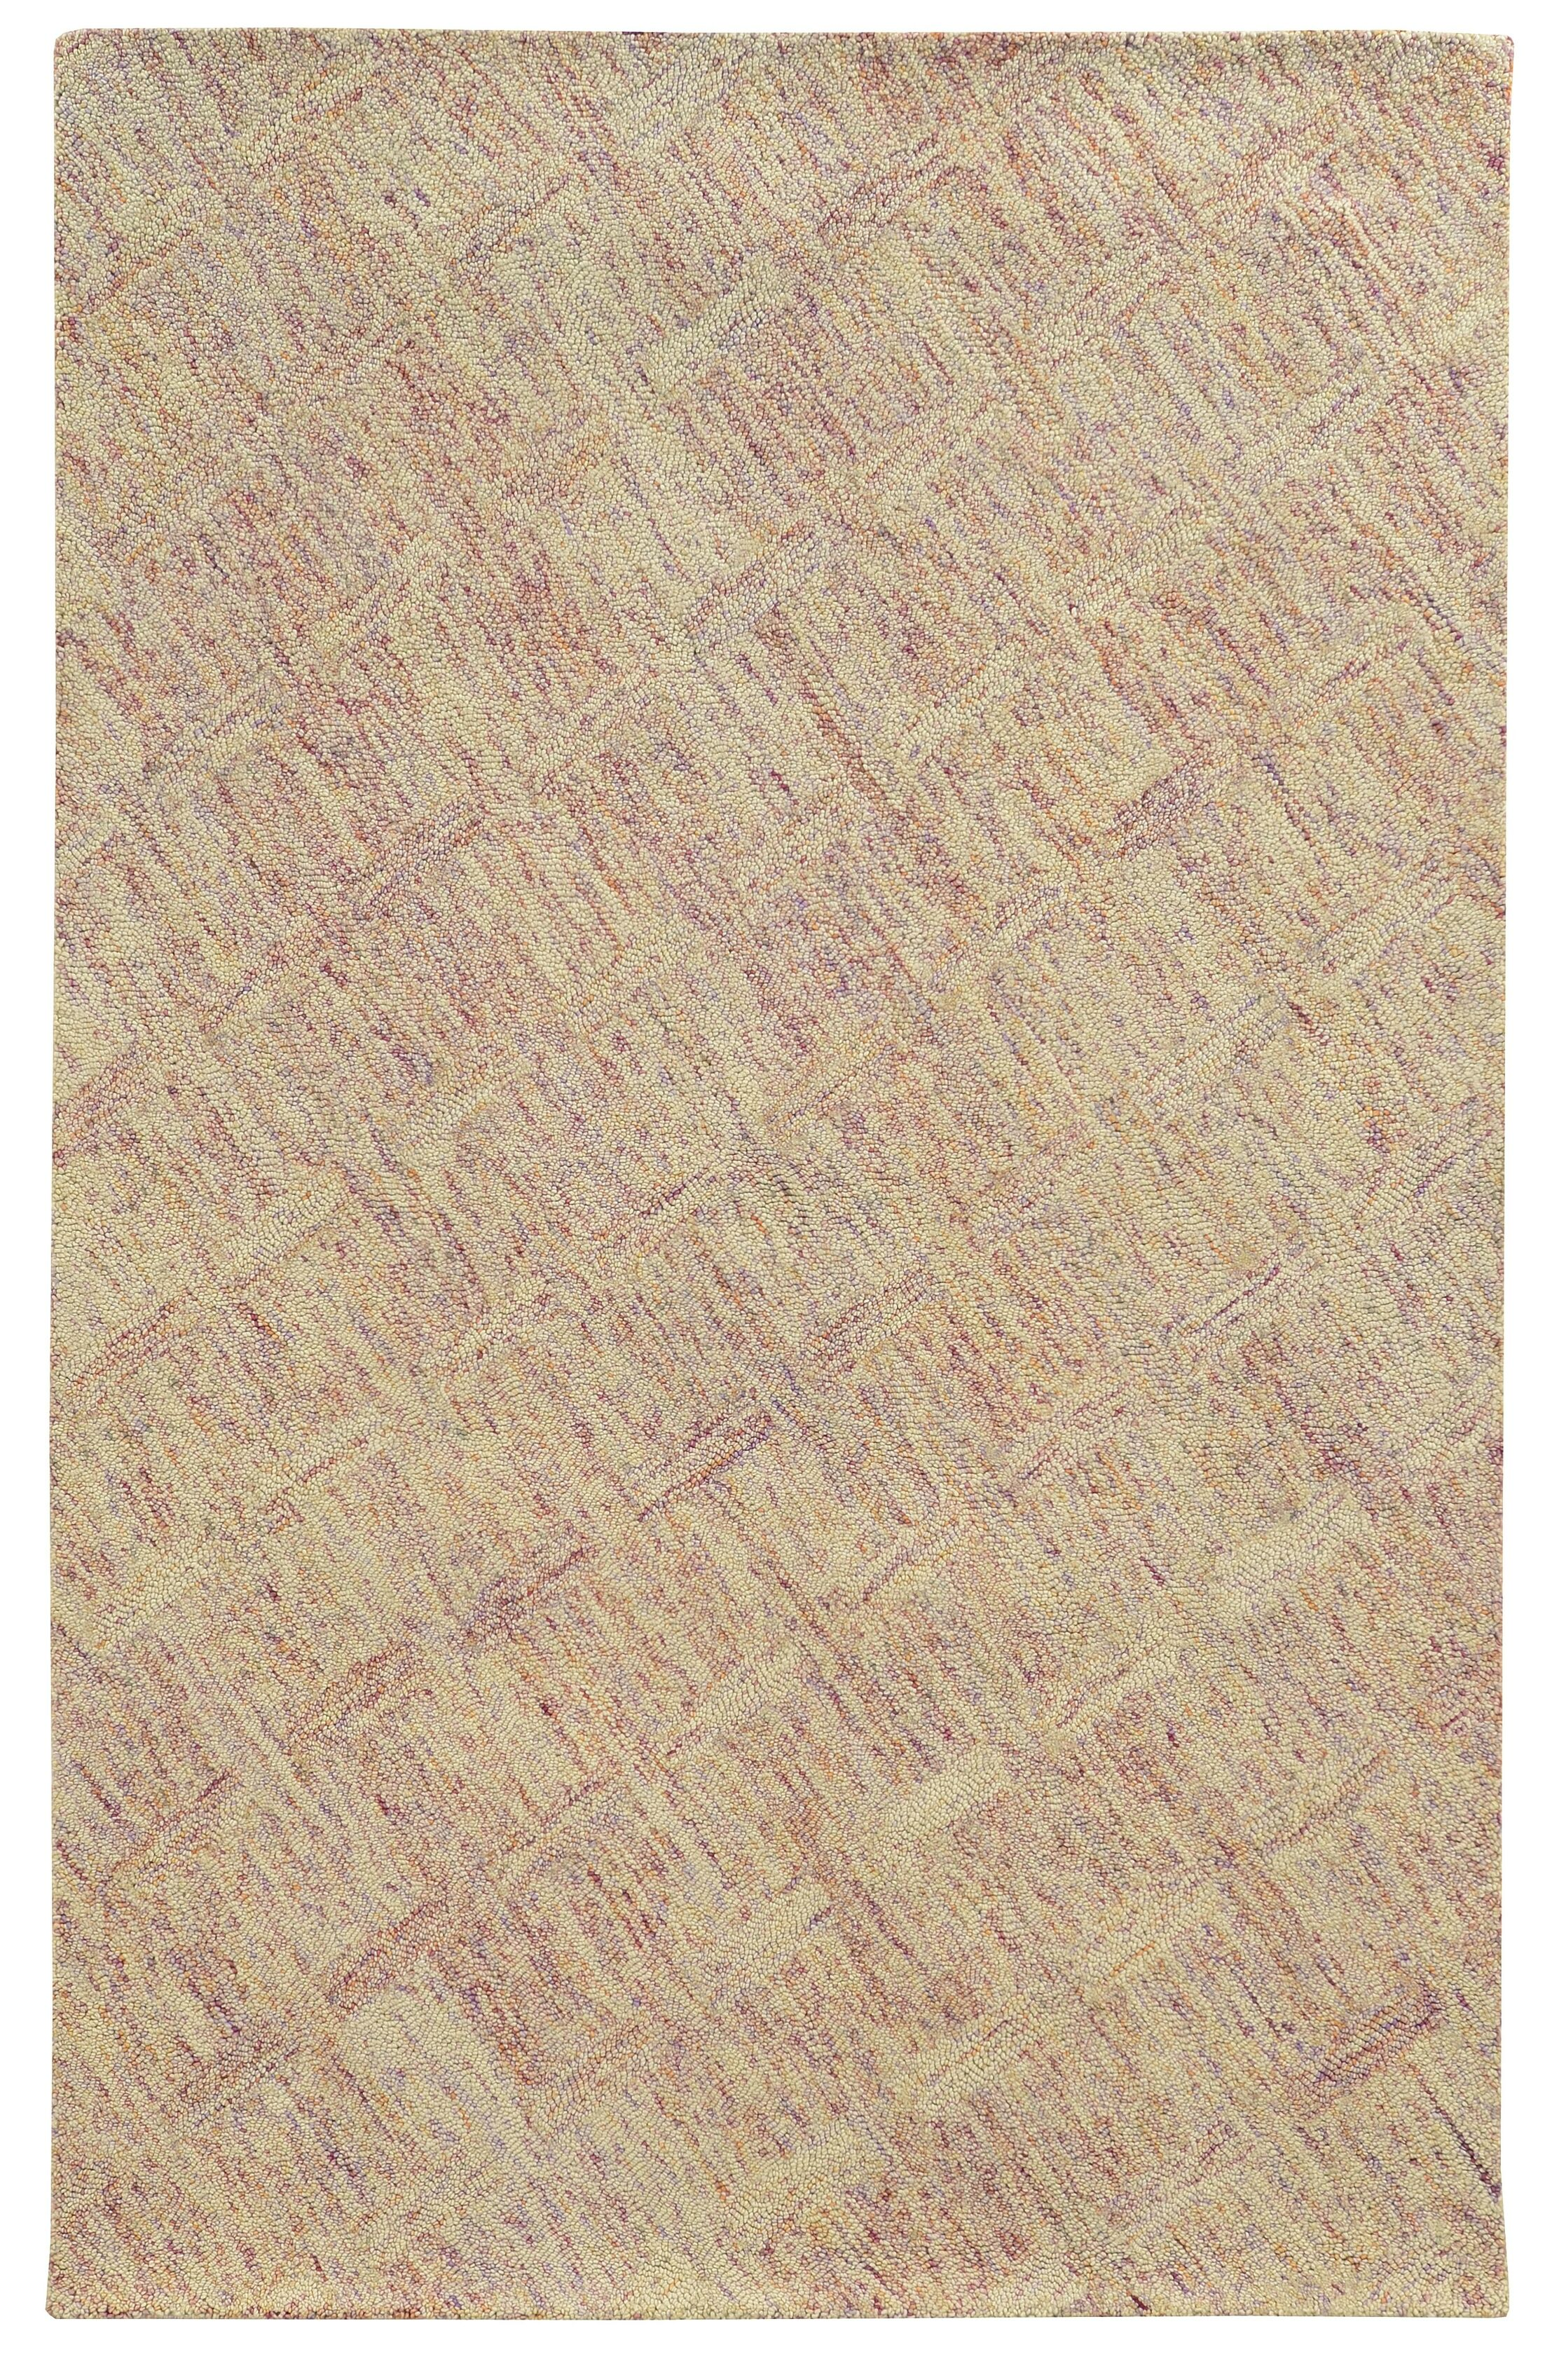 Colorscape Hand-Tufted Geometric Pink/Beige Area Rug Rug Size: Rectangle 8' x 10'